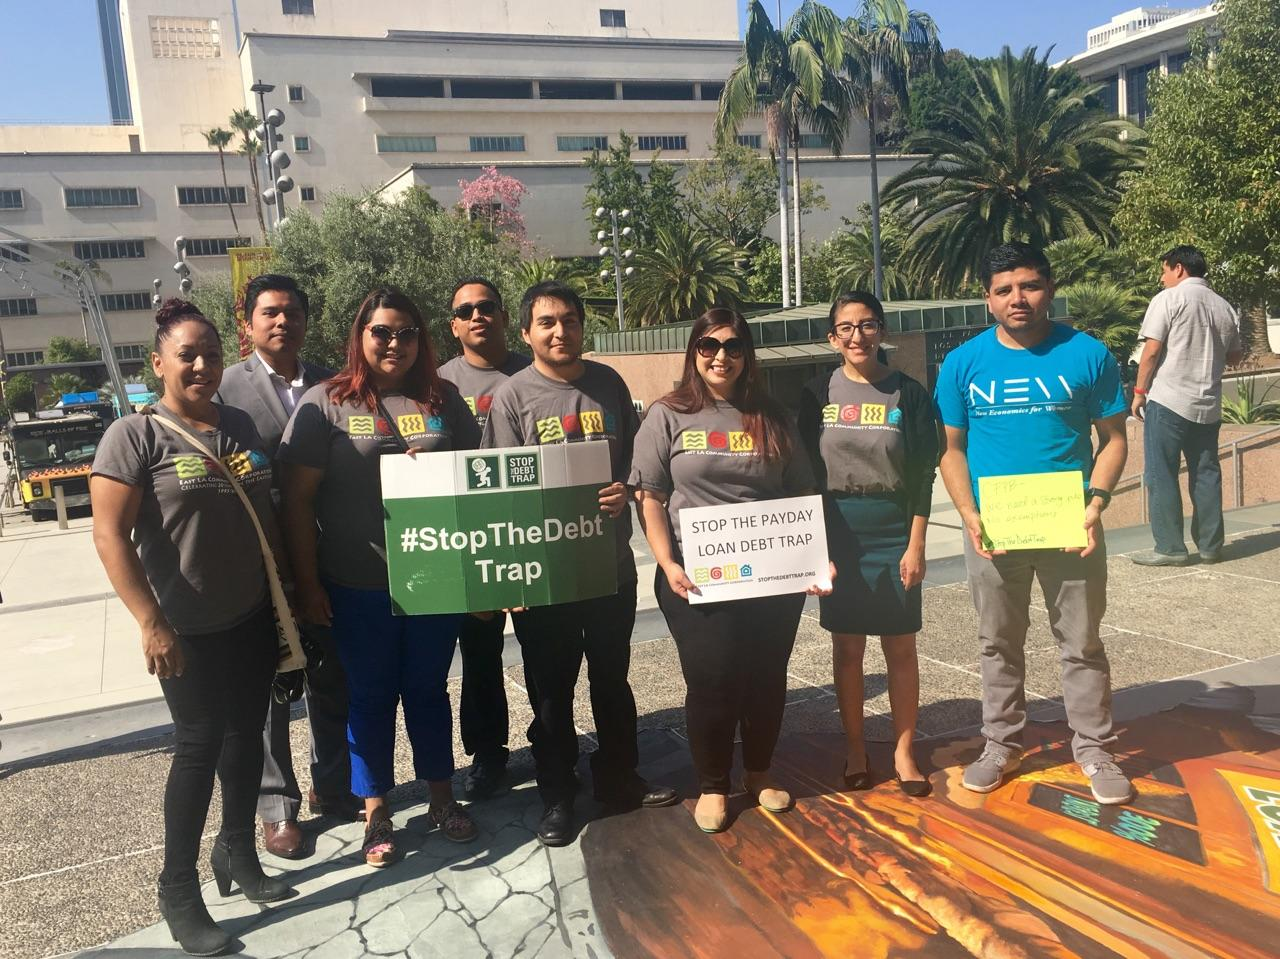 So excited to be part of this movement! @elaccOrg #StopTheDebtTrap @CalReinvest @CFPB https://t.co/5xtGSe1GwX